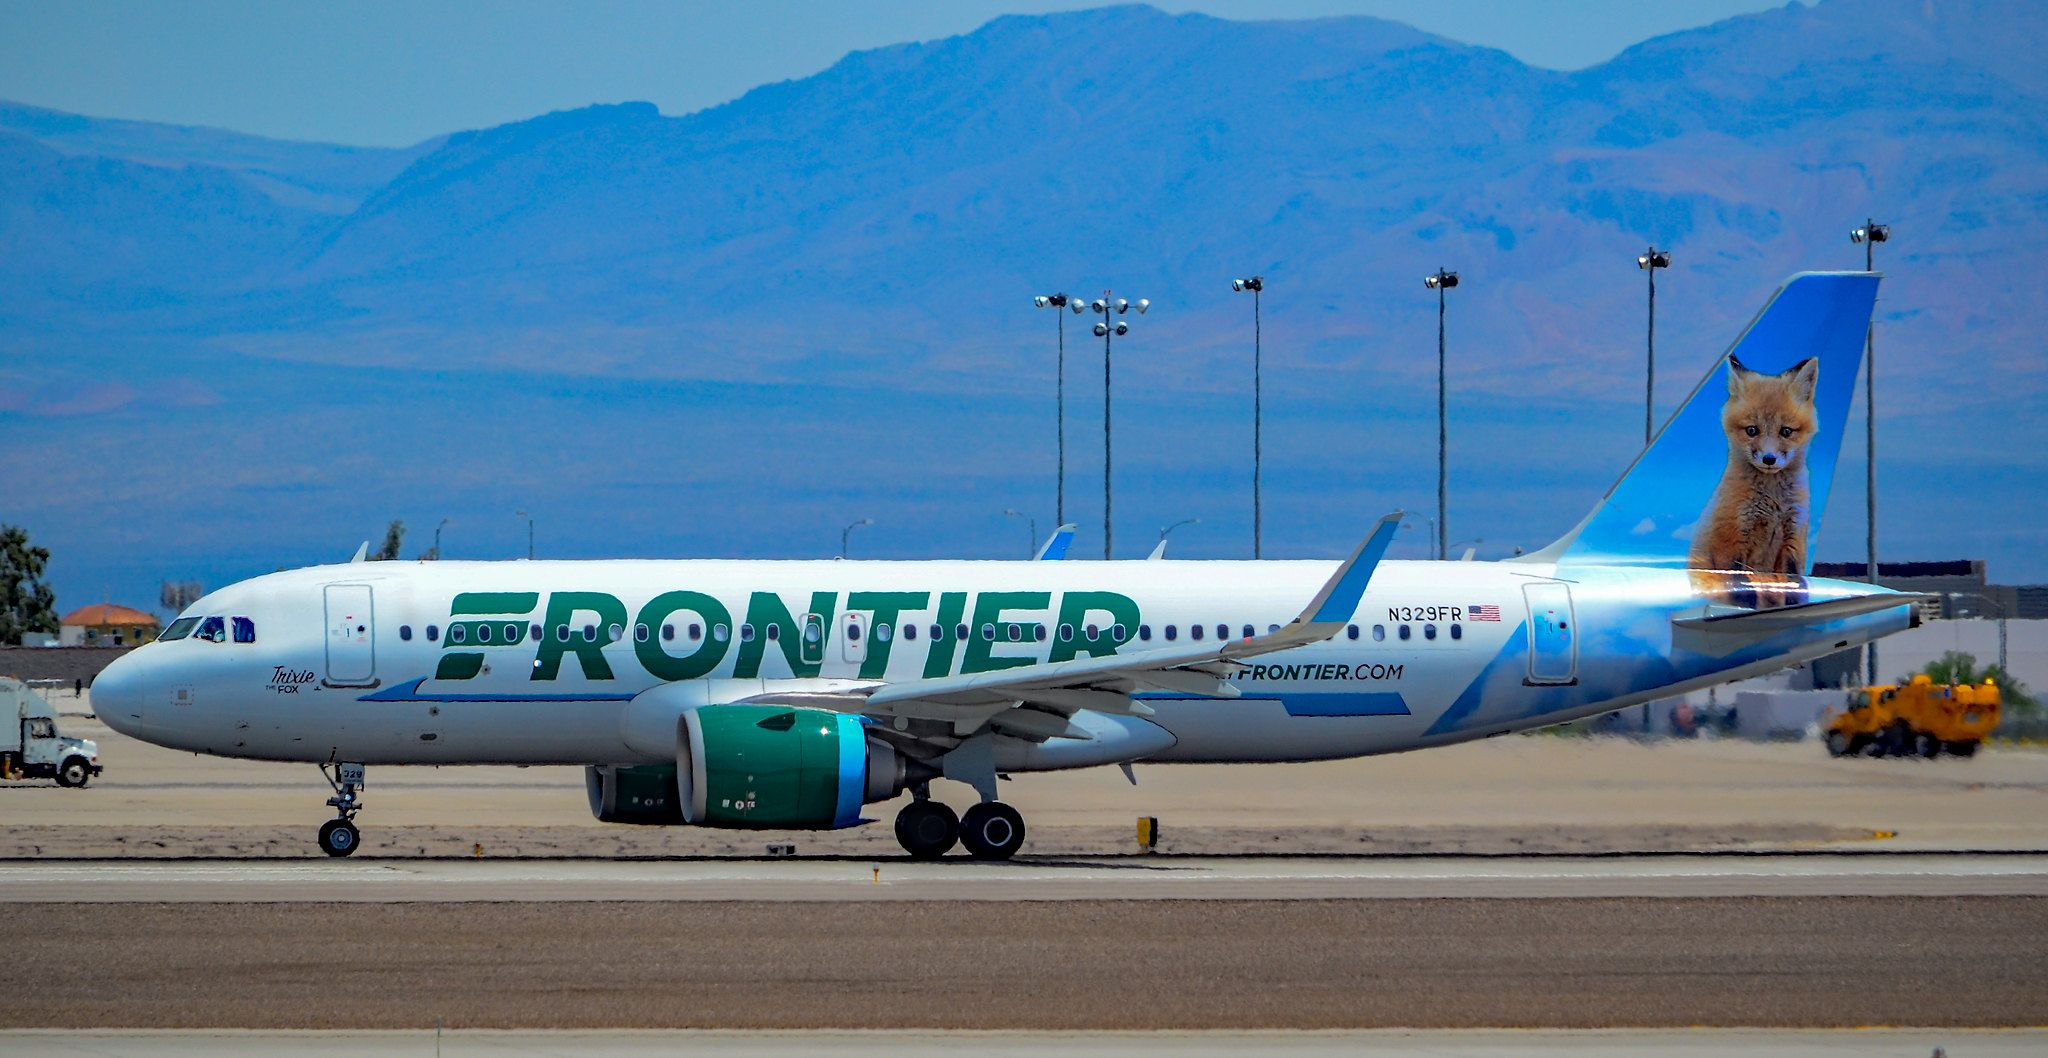 N329fr Frontier Airlines Airbus A320 251n S N 8135 Trixie The Fox